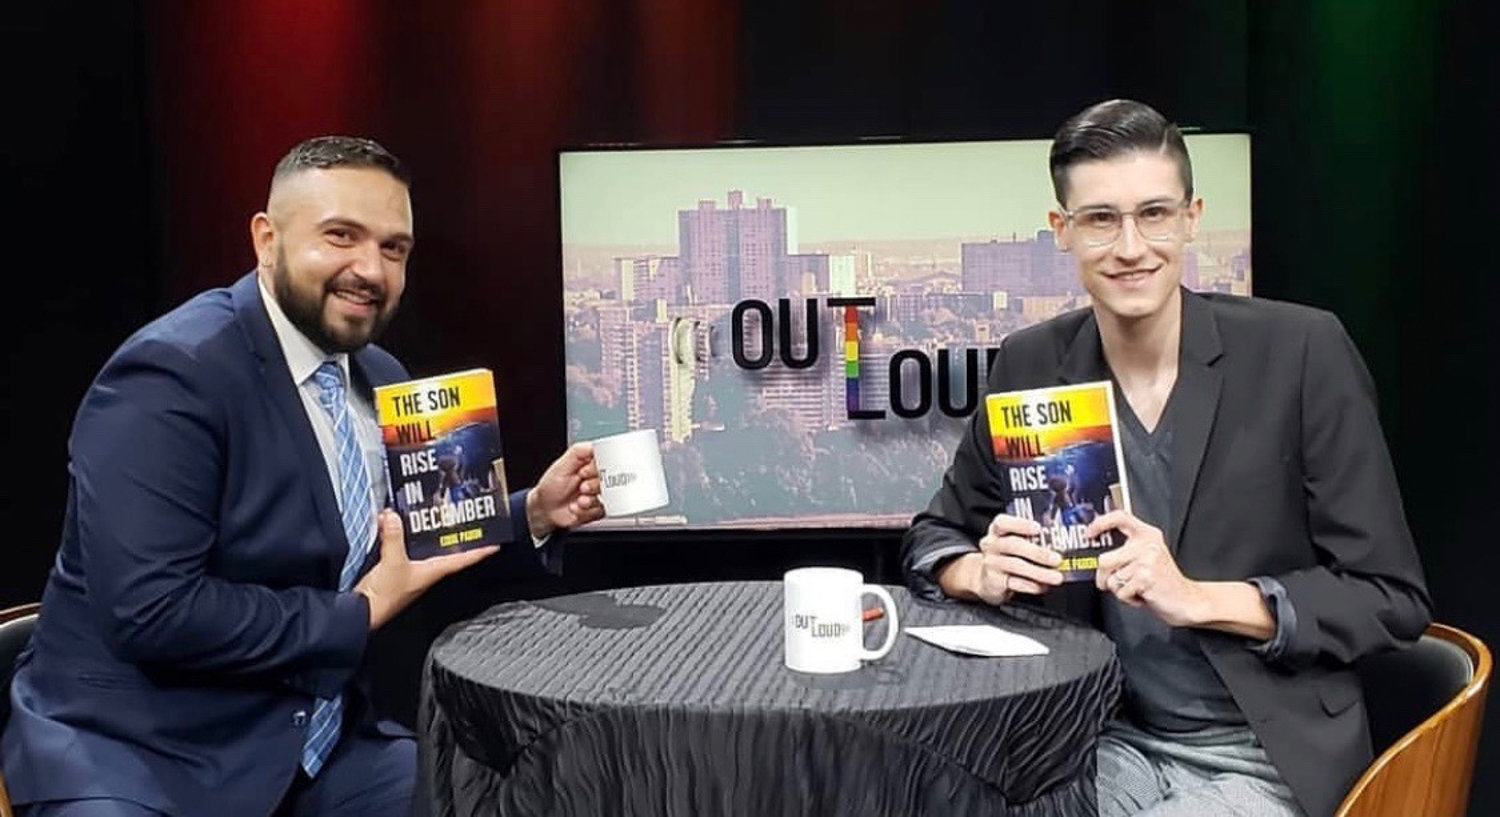 Anthony Parker, right, sits down with local author Eddie Pabon, left, to talk about his novel 'The Son Will Rise in December,' for the 'Out Loud' television program on BronxNet.